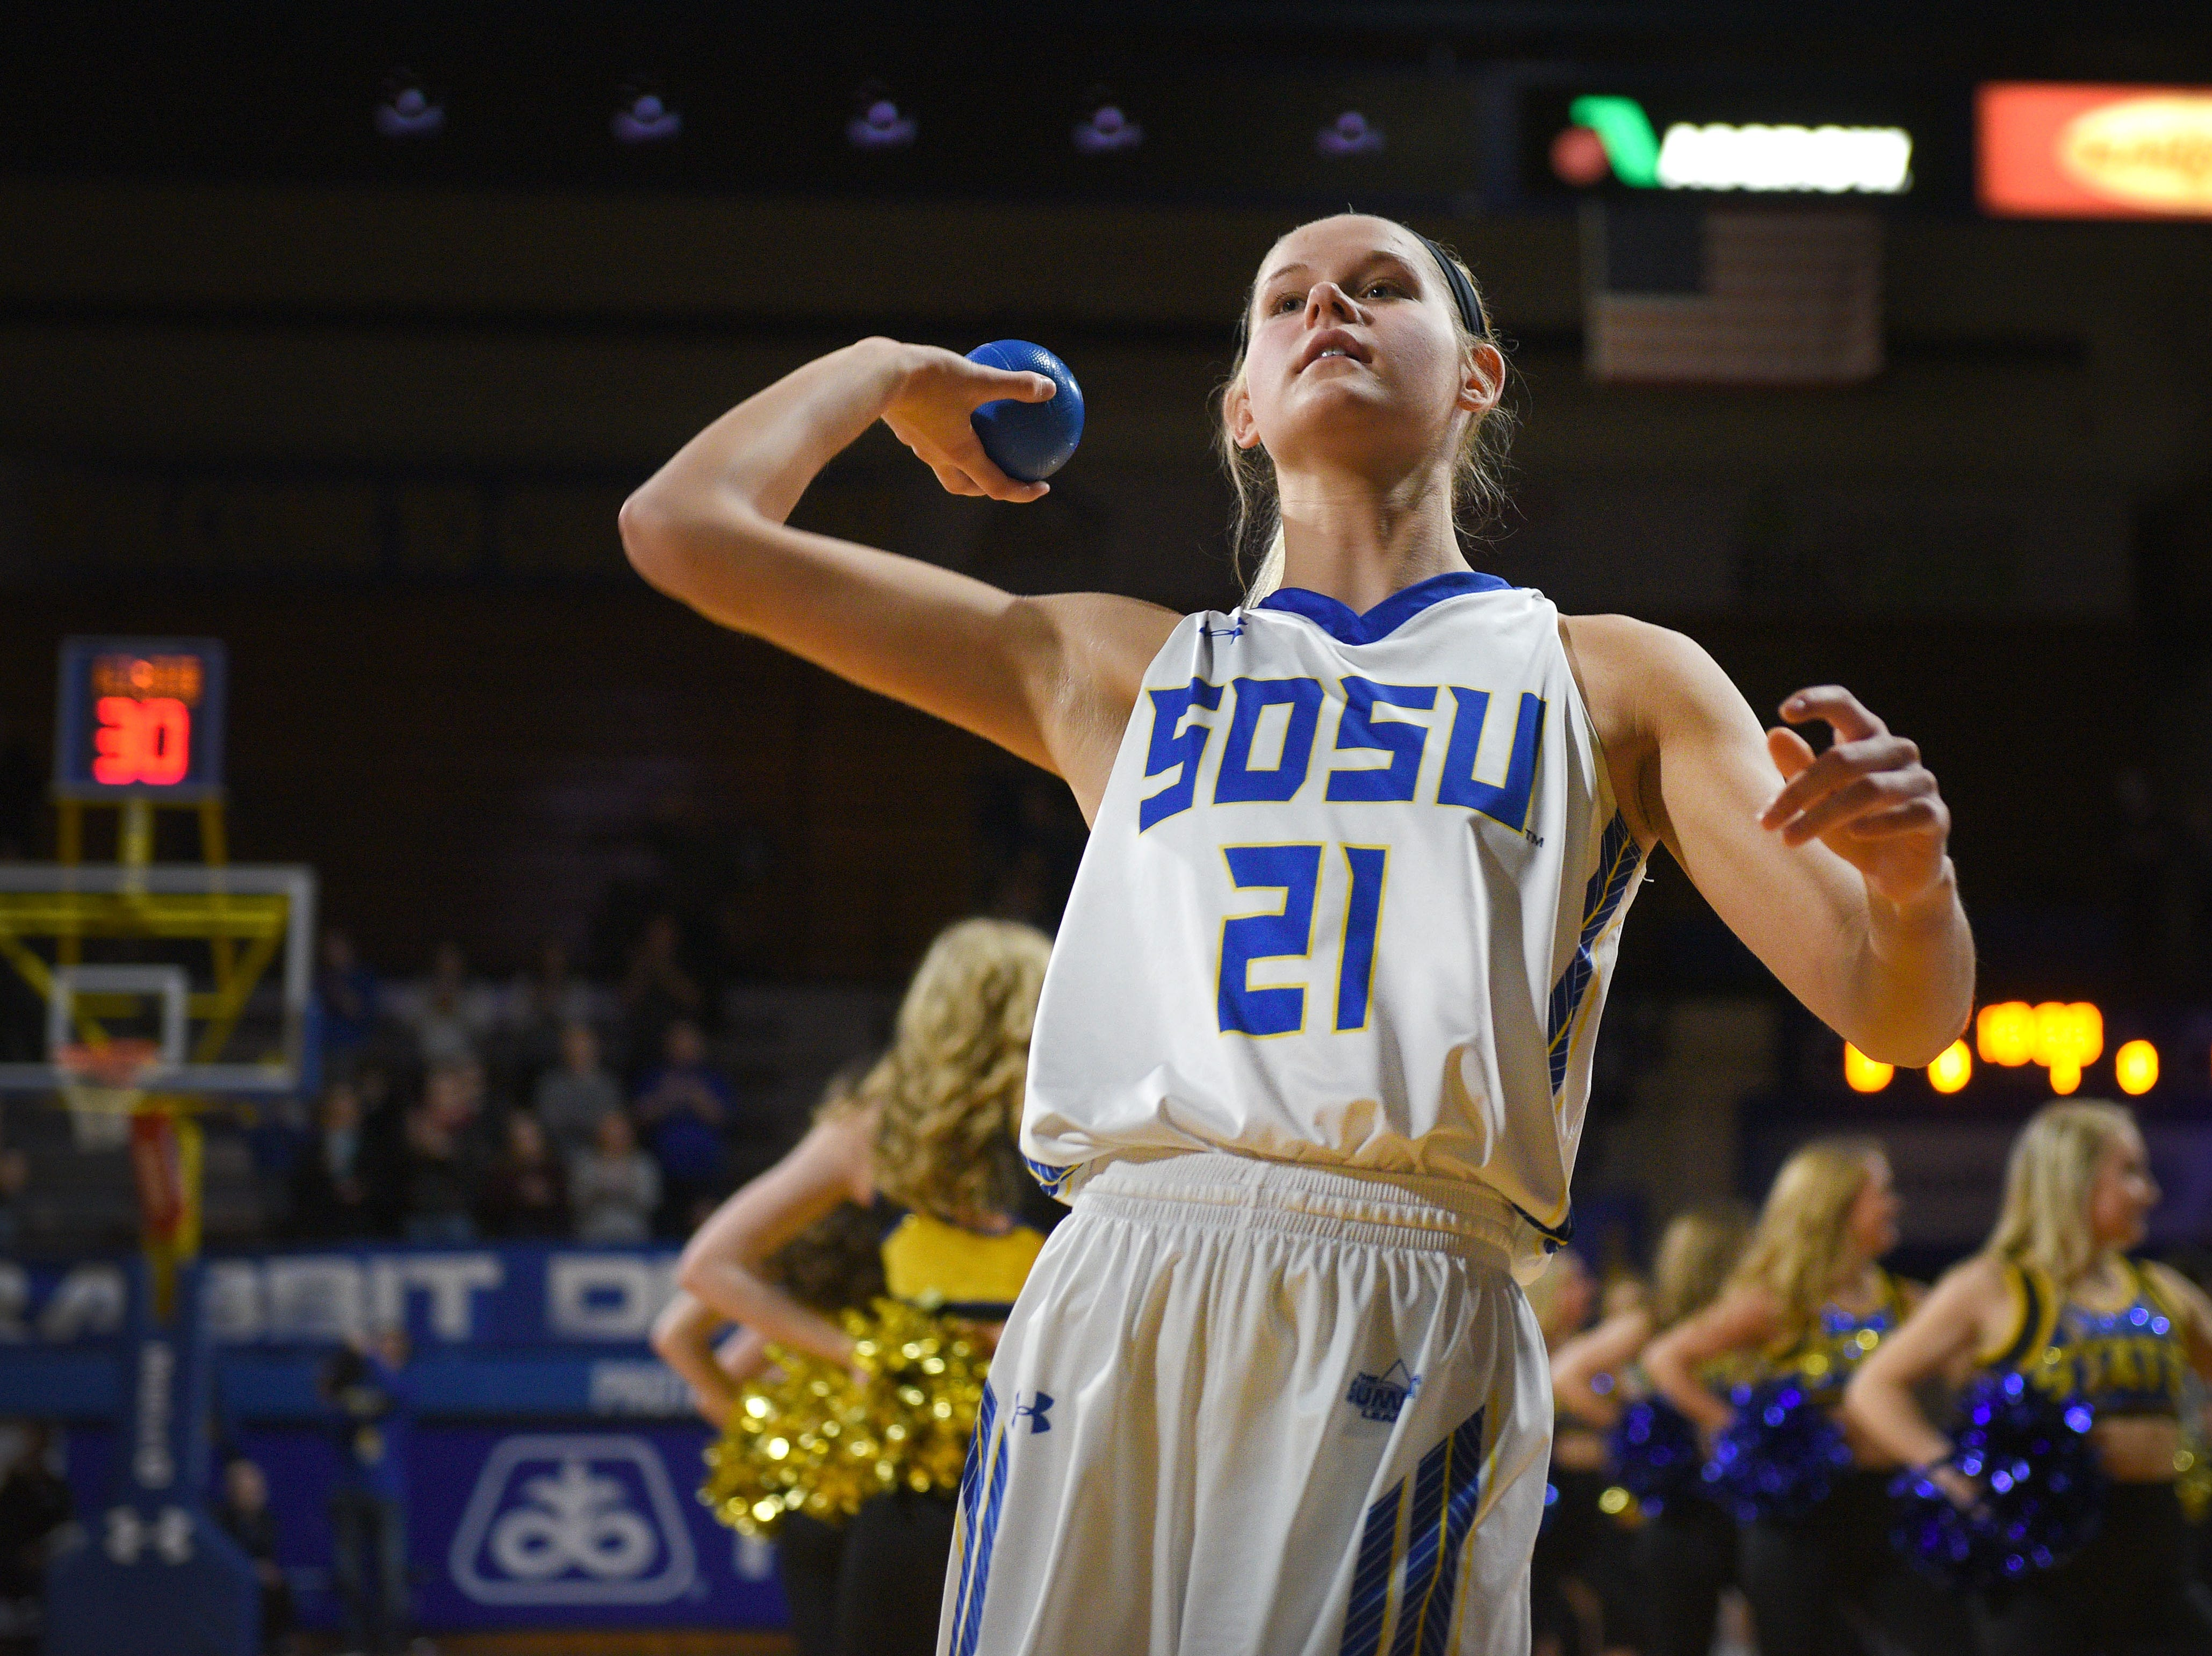 SDSU's Tylee Irwin throws a ball out into the crowd before the game against NDSU Wednesday, Jan. 23, at Frost Arena in Brookings.